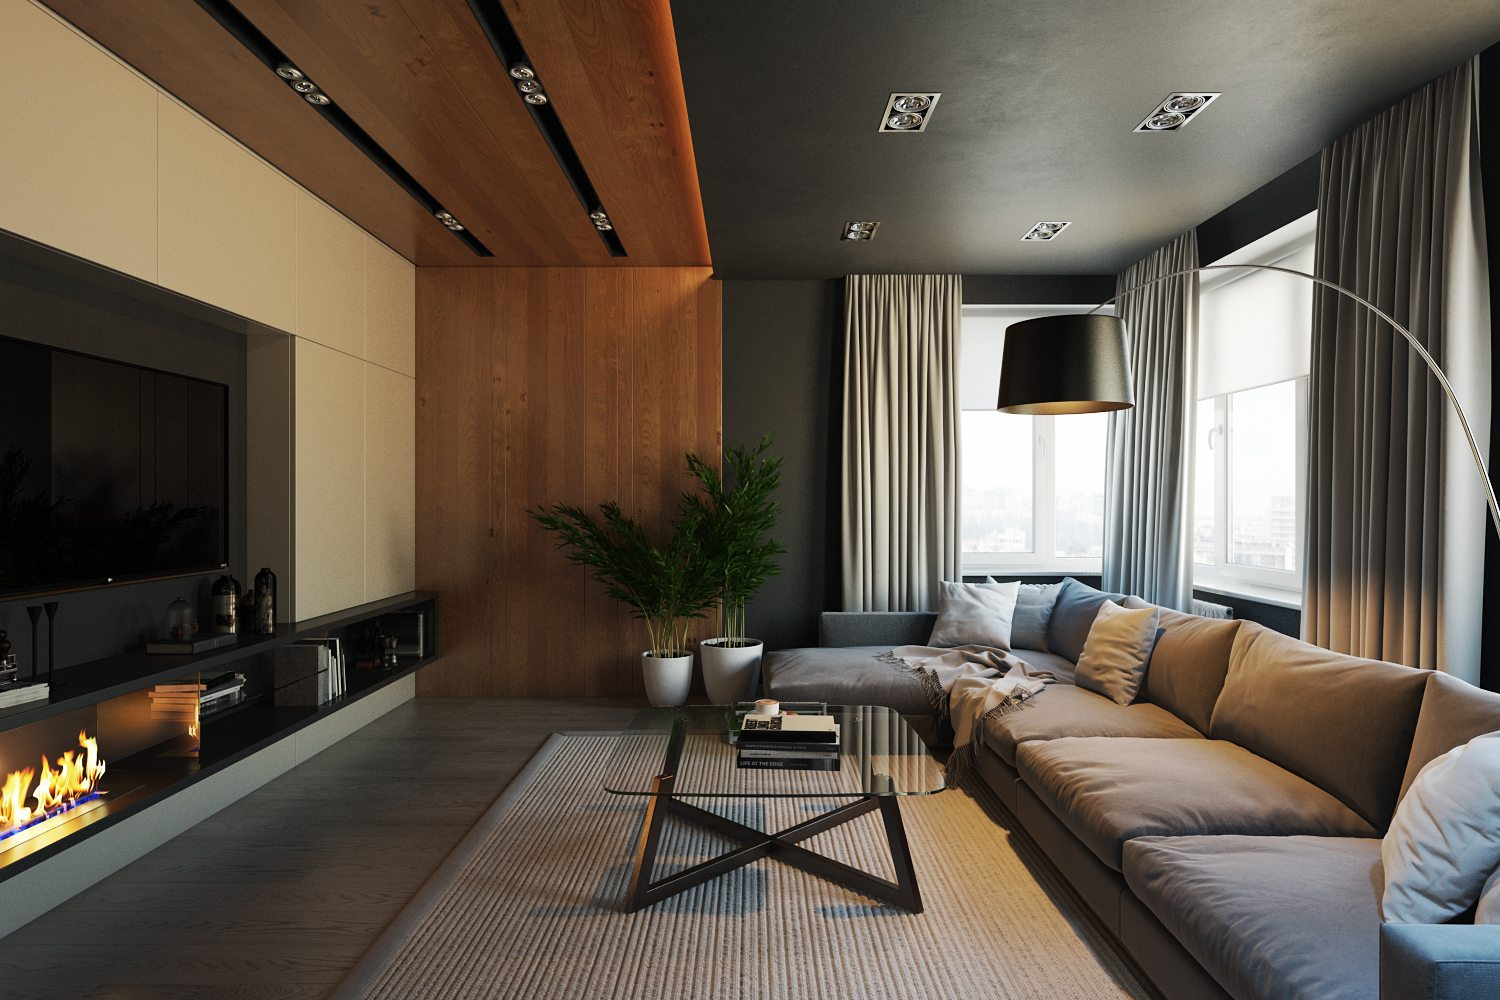 CG View of a Living Room Design Showing Lighting Solutions